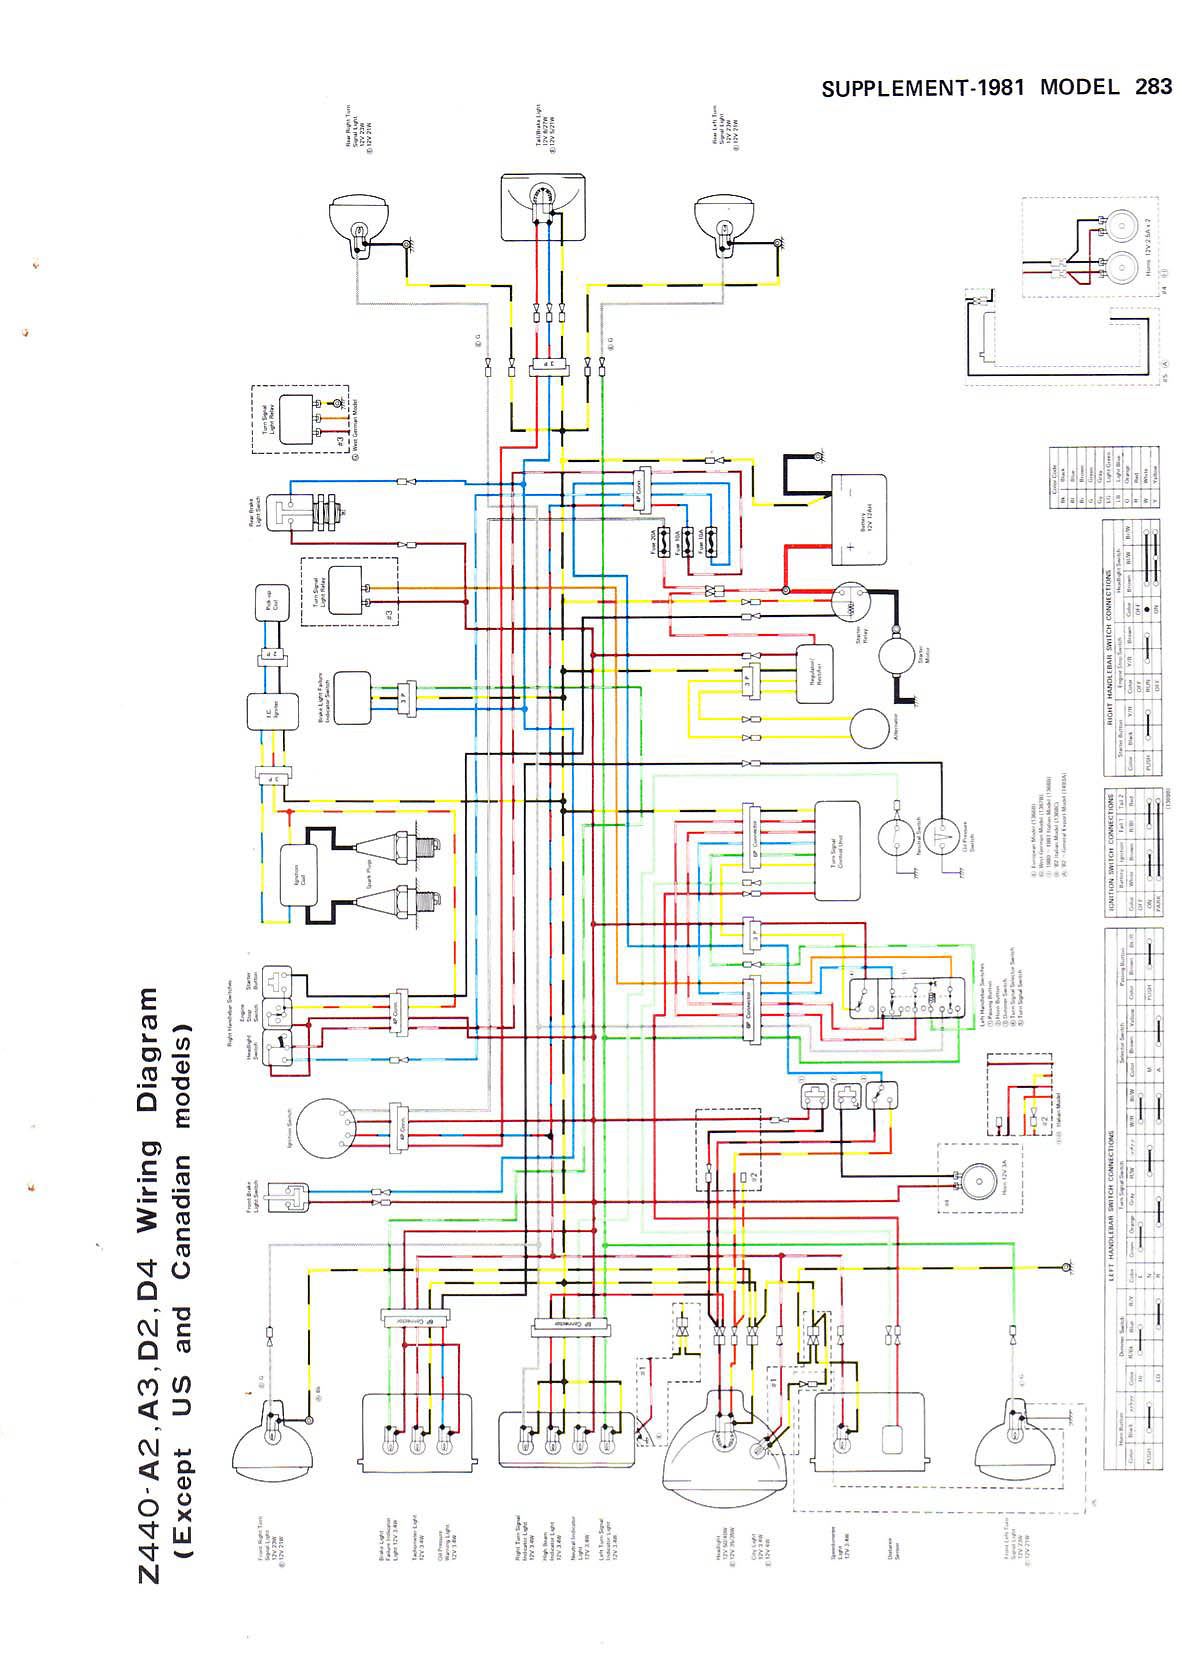 Kawasaki KZ 440 %2780 a %2782 Service Manual_Page_280 kz400 wiring diagram 1983 kawasaki motorcycle wiring diagrams  at crackthecode.co